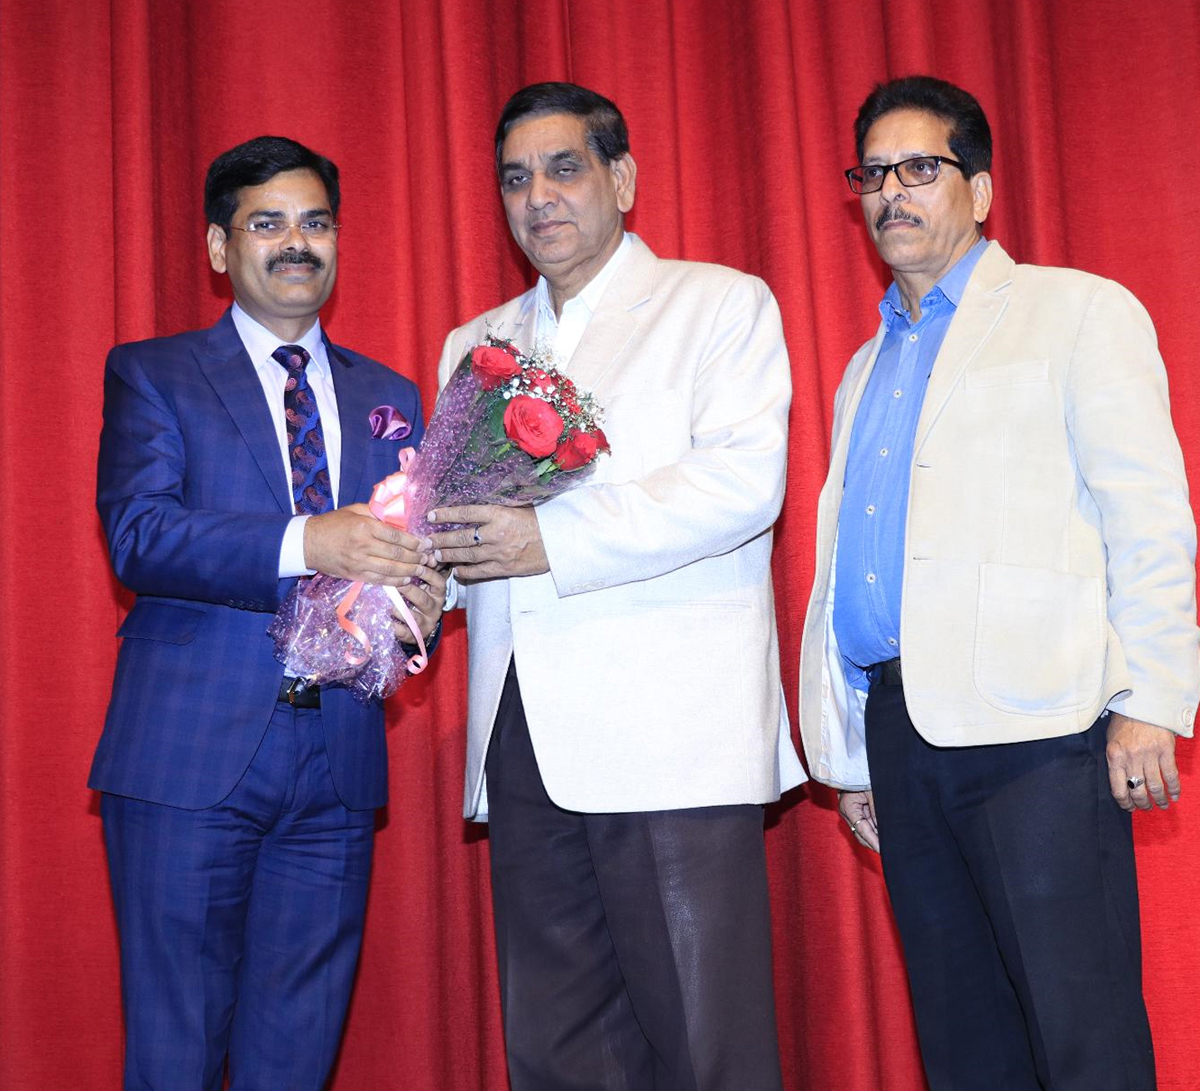 Bouquet presentation during Annual Day celebration by Sanfort Preschool chain in Jammu.